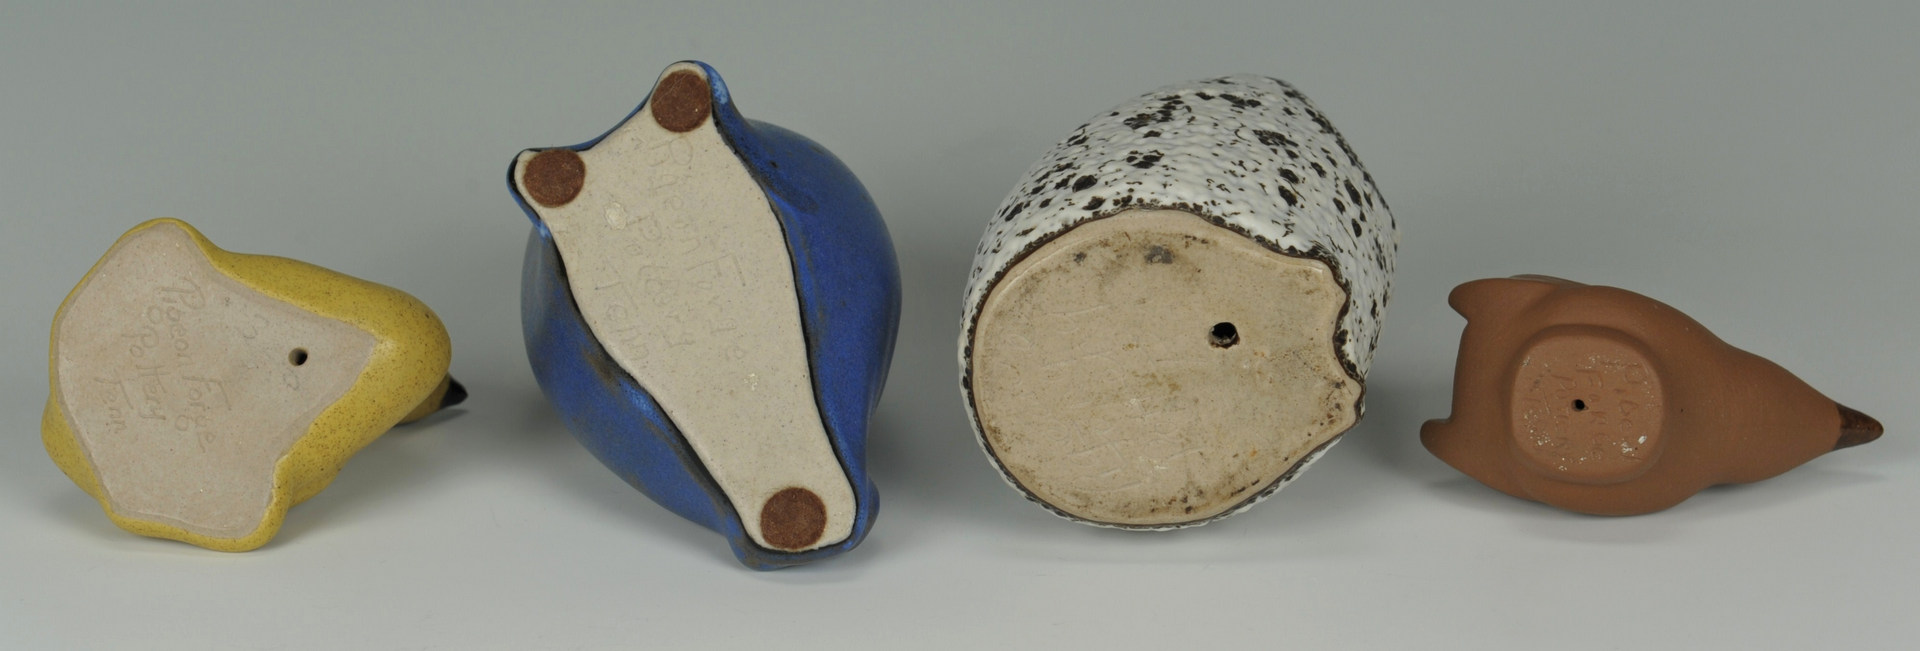 Lot 307: Grouping of Pigeon Forge, TN Pottery, 9 items